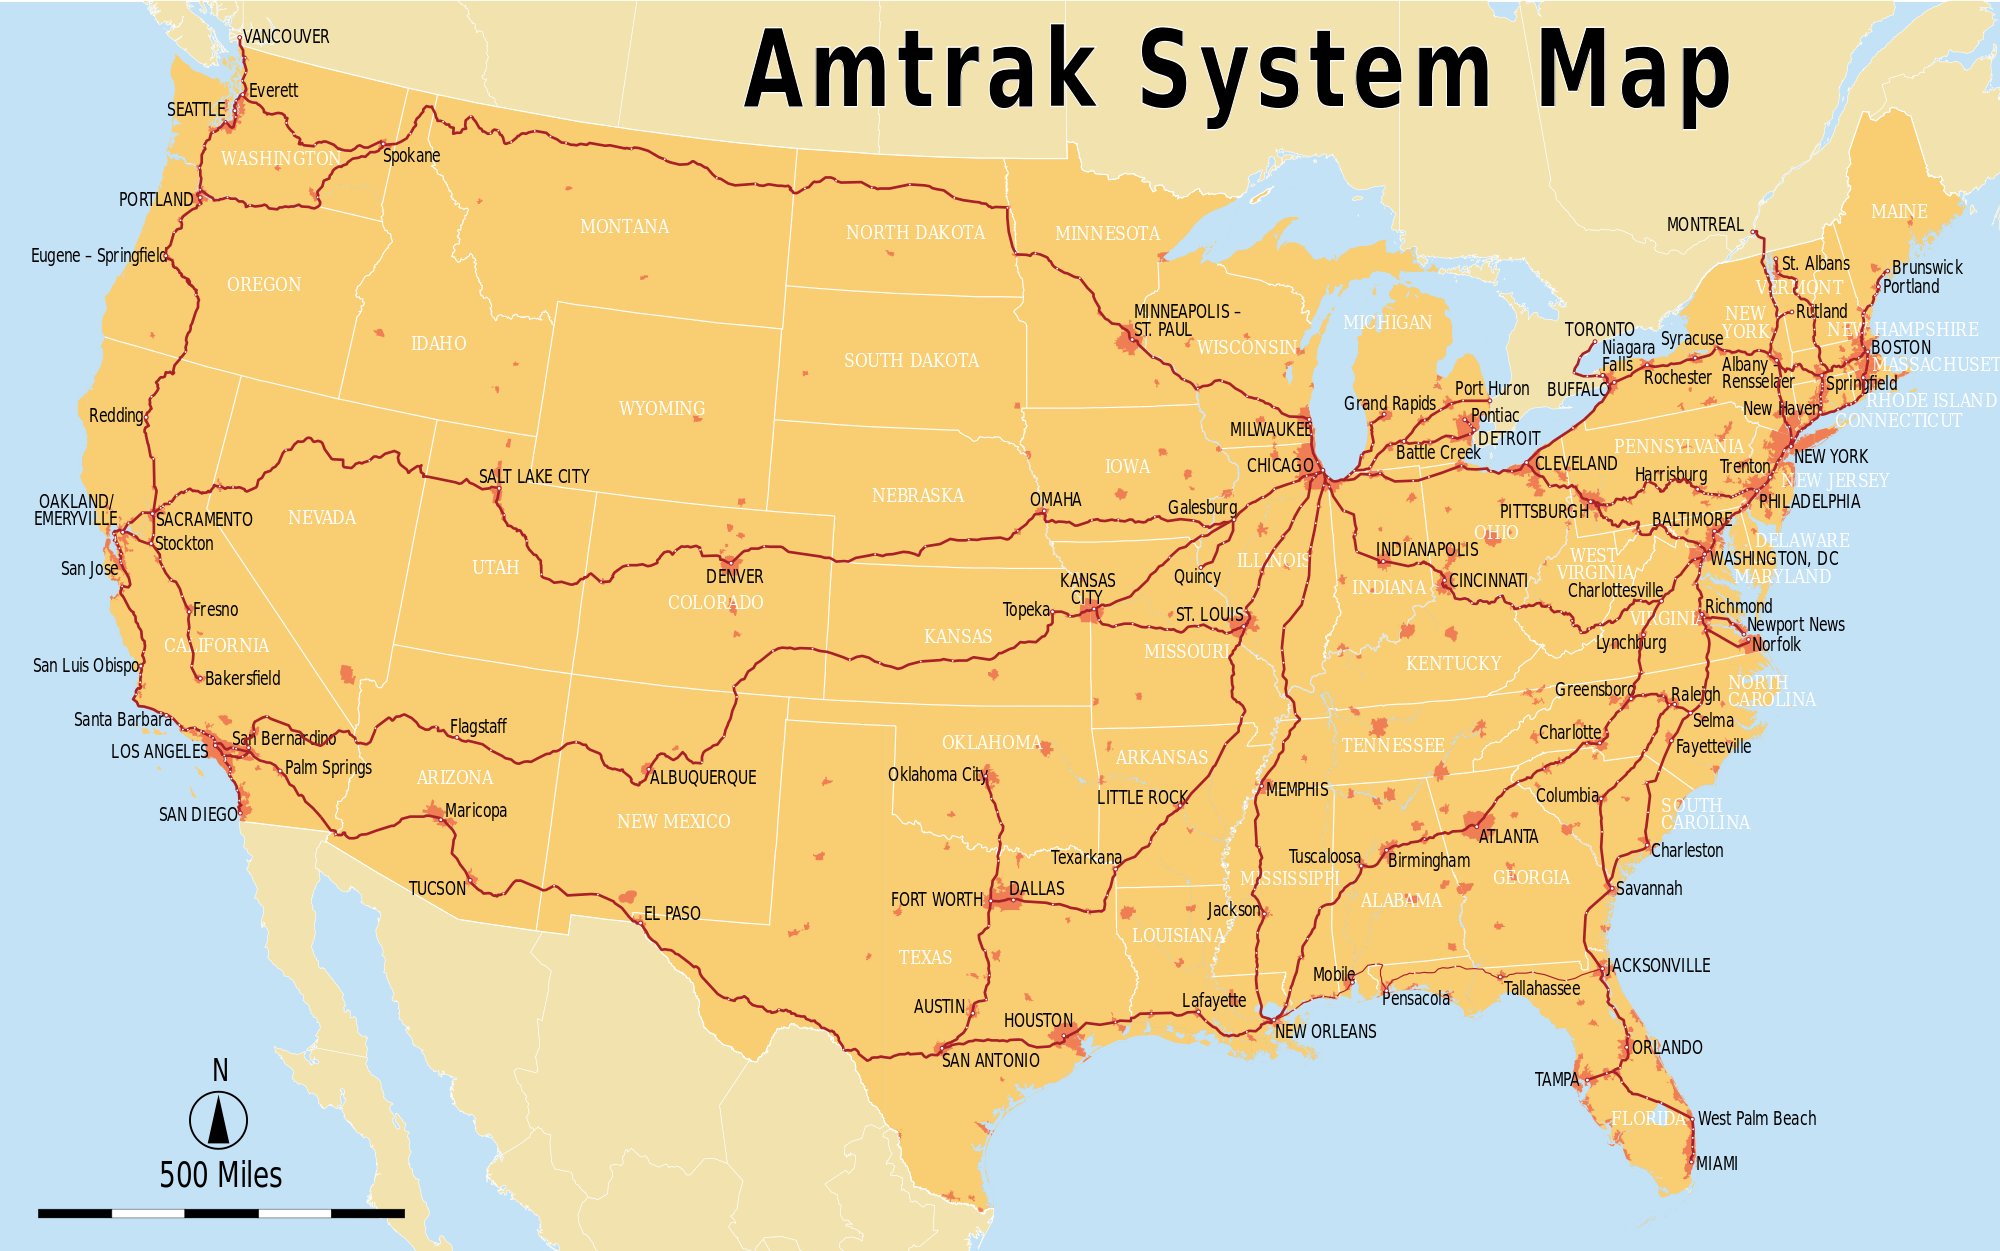 Train Travel Usa Map.Amtrak Train System Map Future Train Travel Travel Amtrak